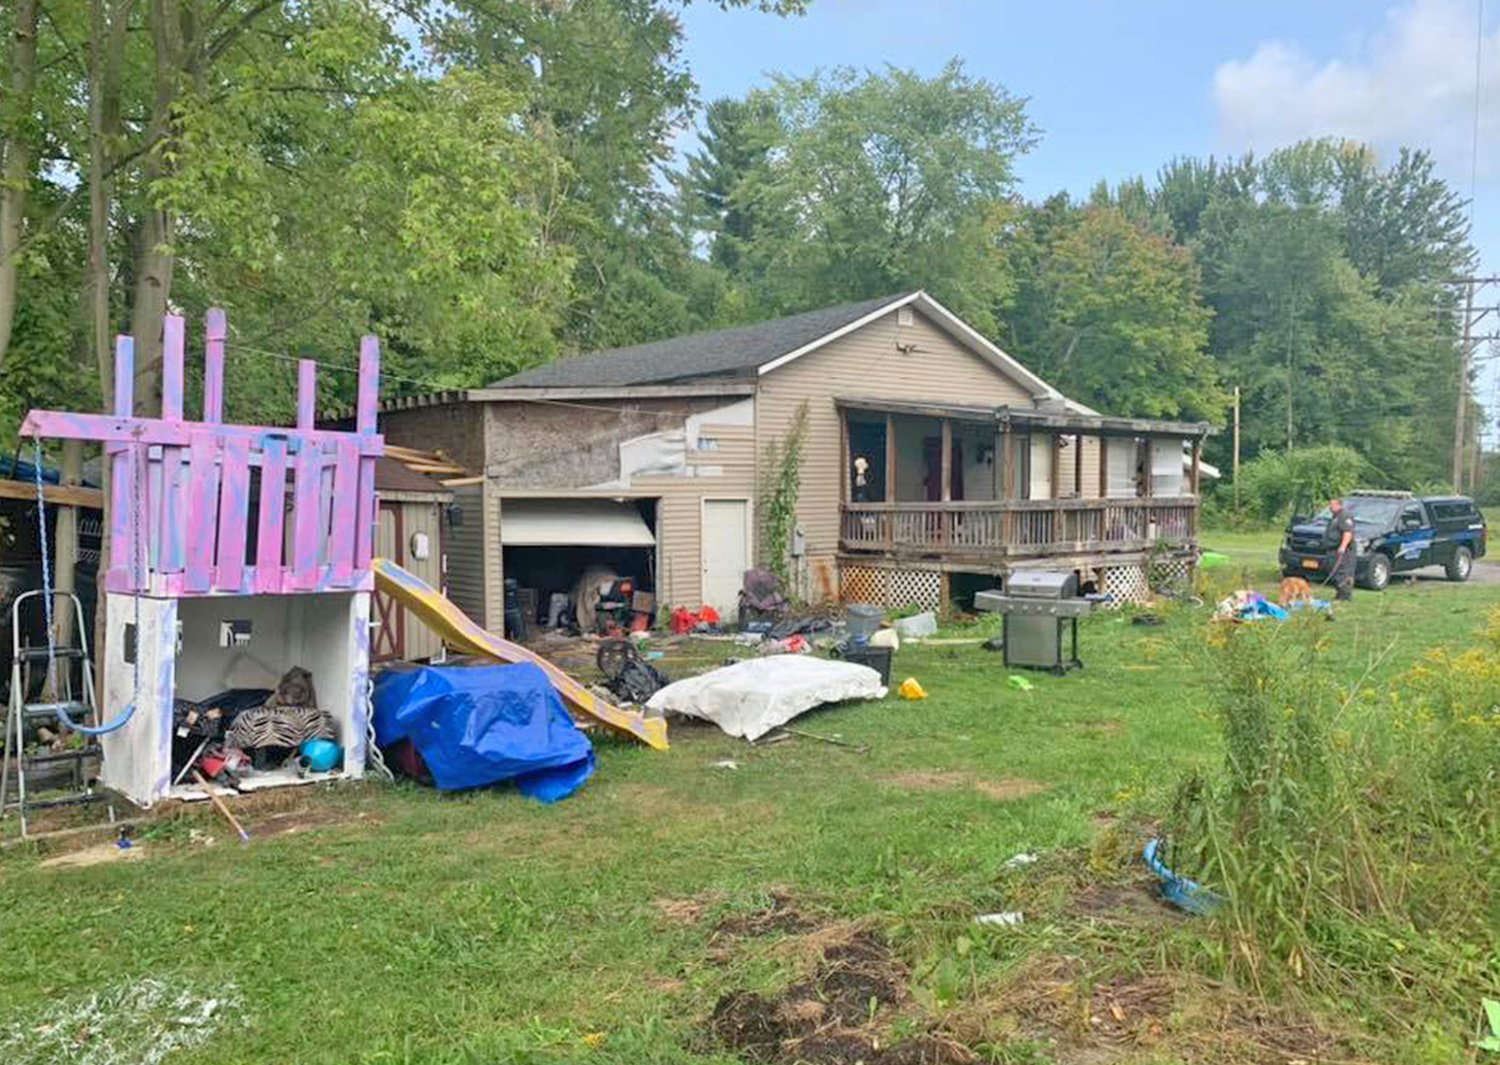 PROPERTY UNDER INVESTIGATION — This residence on Cobb Street in Oneida is under investigation for trash and possible codes violations, according to Oneida City Police. No arrests have been made so far. Police said the owner is in the hospital.